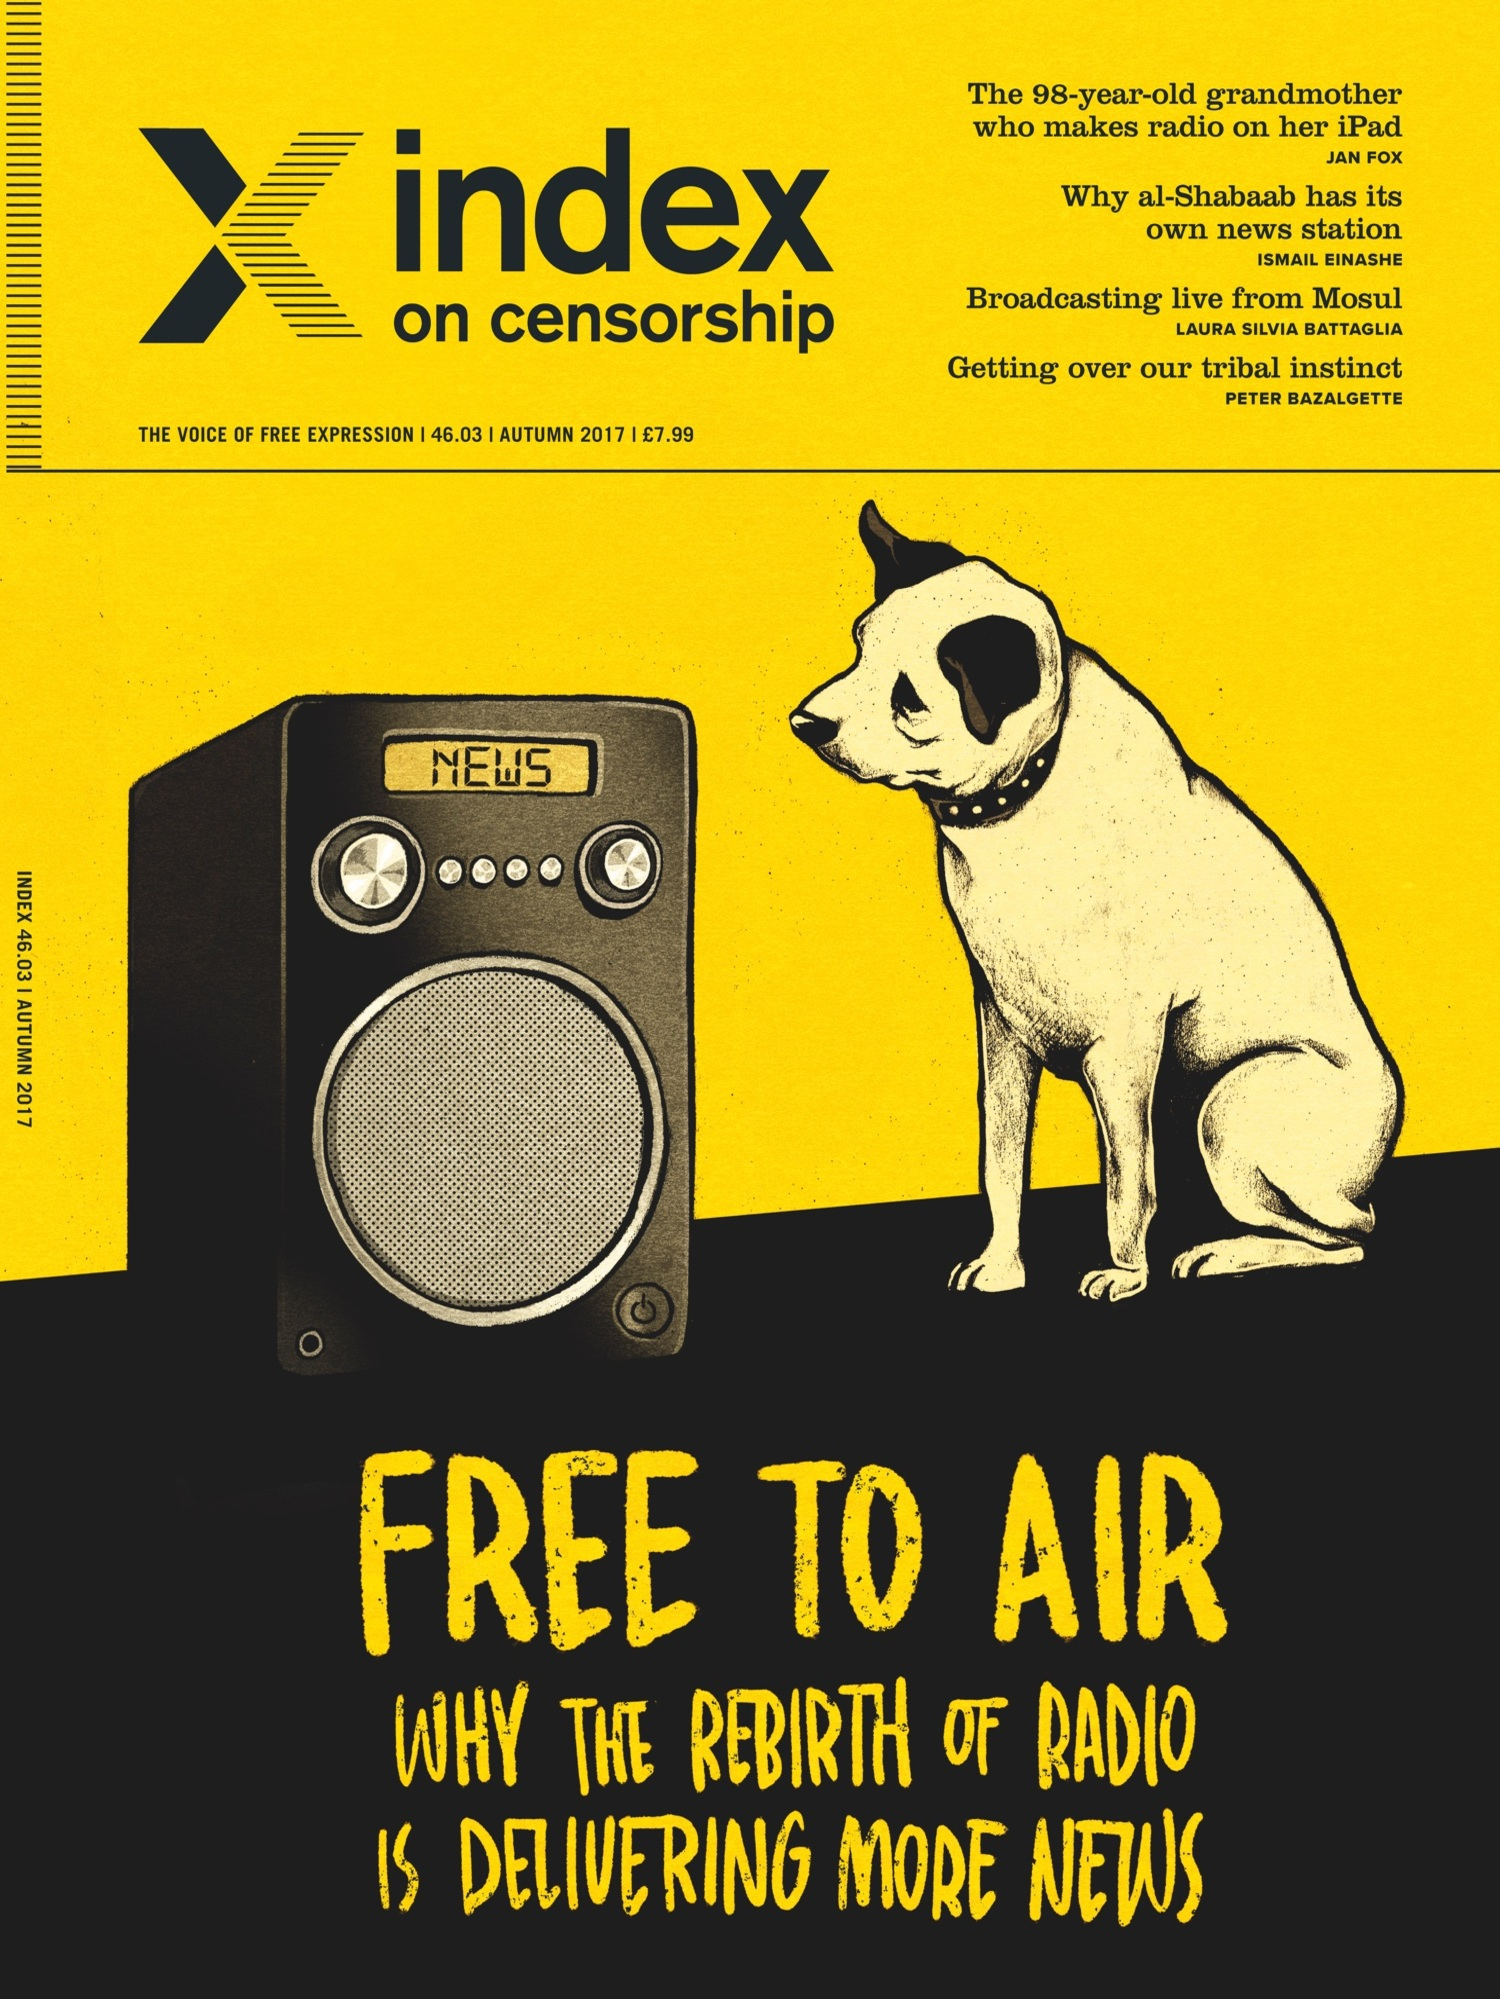 RADIO IS BACK AND THAT'S GOOD FOR FREEDOM OF EXPRESSION